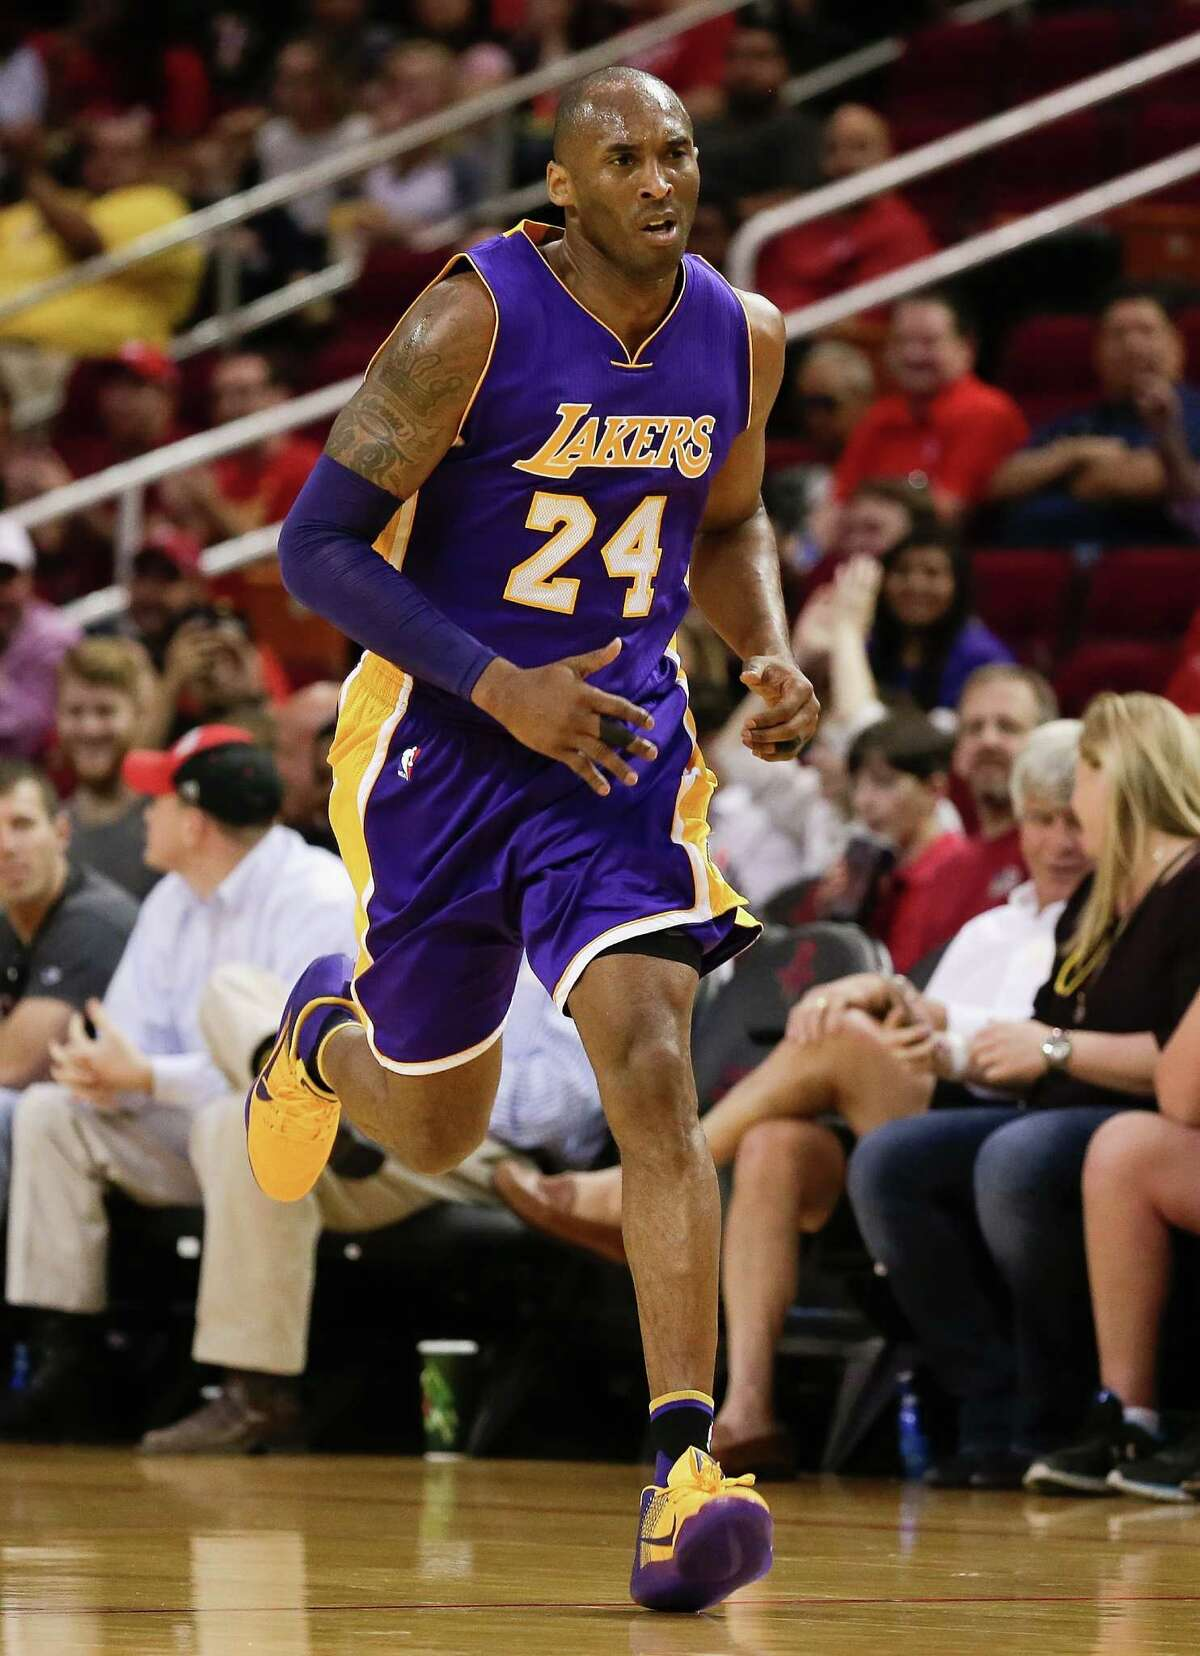 HOUSTON, TEXAS - APRIL 10: Kobe Bryant #24 of the Los Angeles Lakers runs the court against the Houston Rockets at Toyota Center on April 10, 2016 in Houston, Texas.